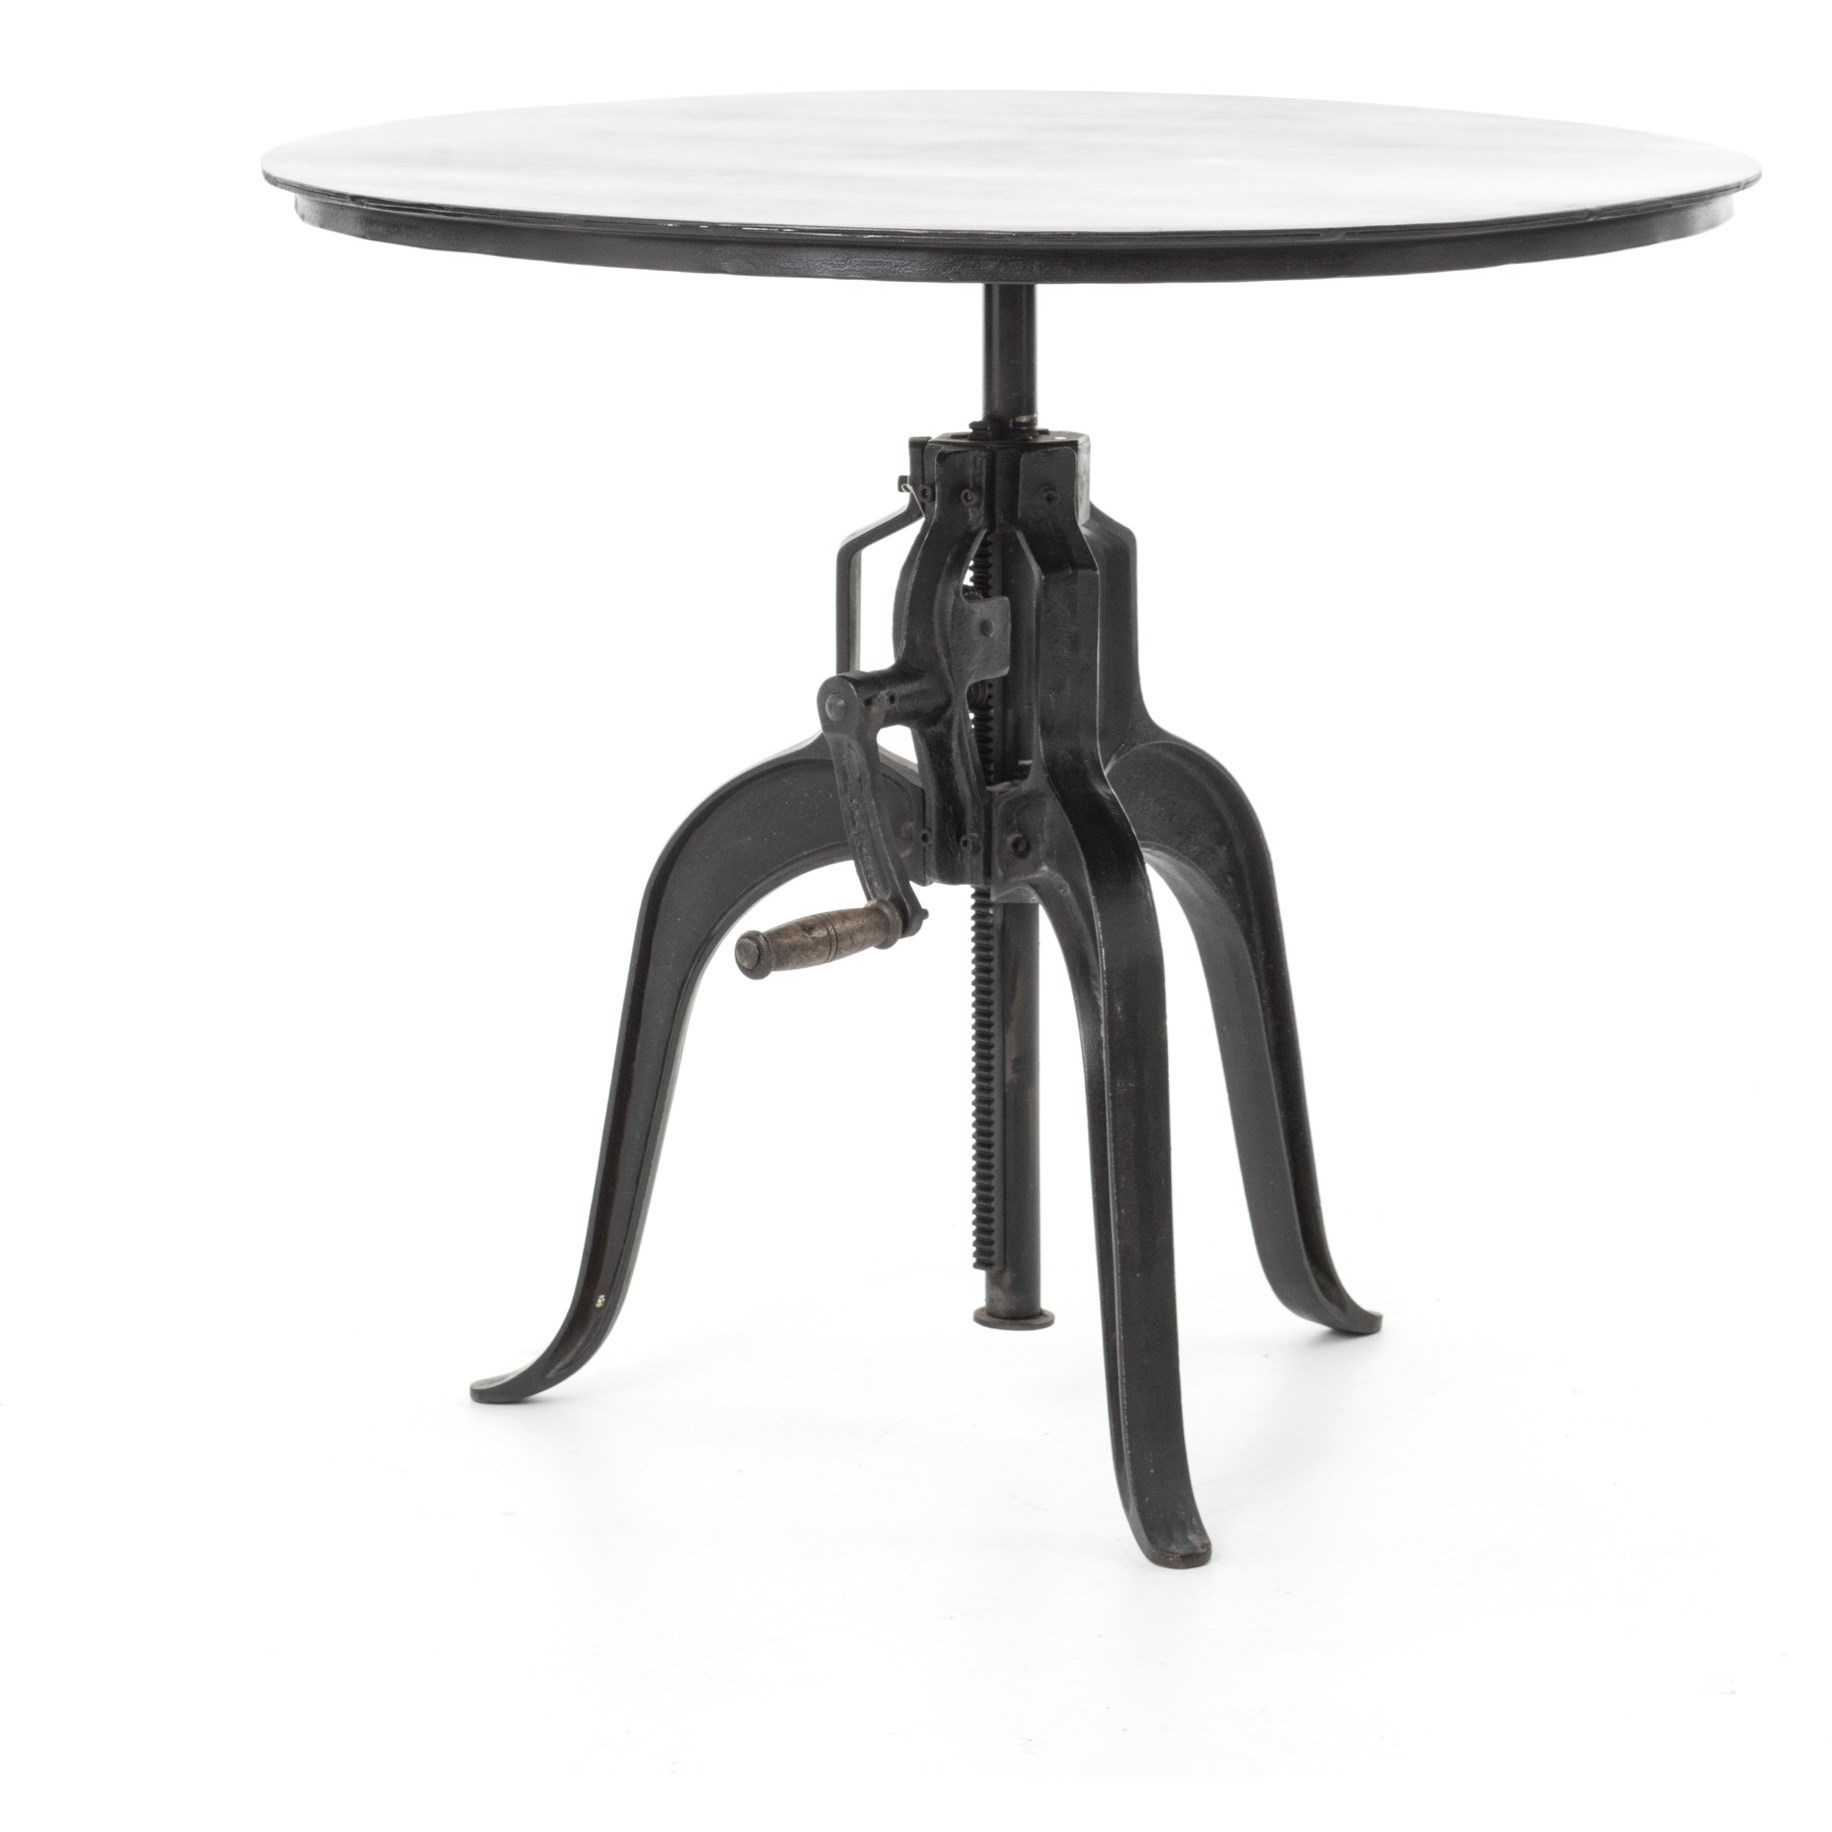 Four Hands Rockwell Crank Adjustable Side Table - Item Number: I80007-213